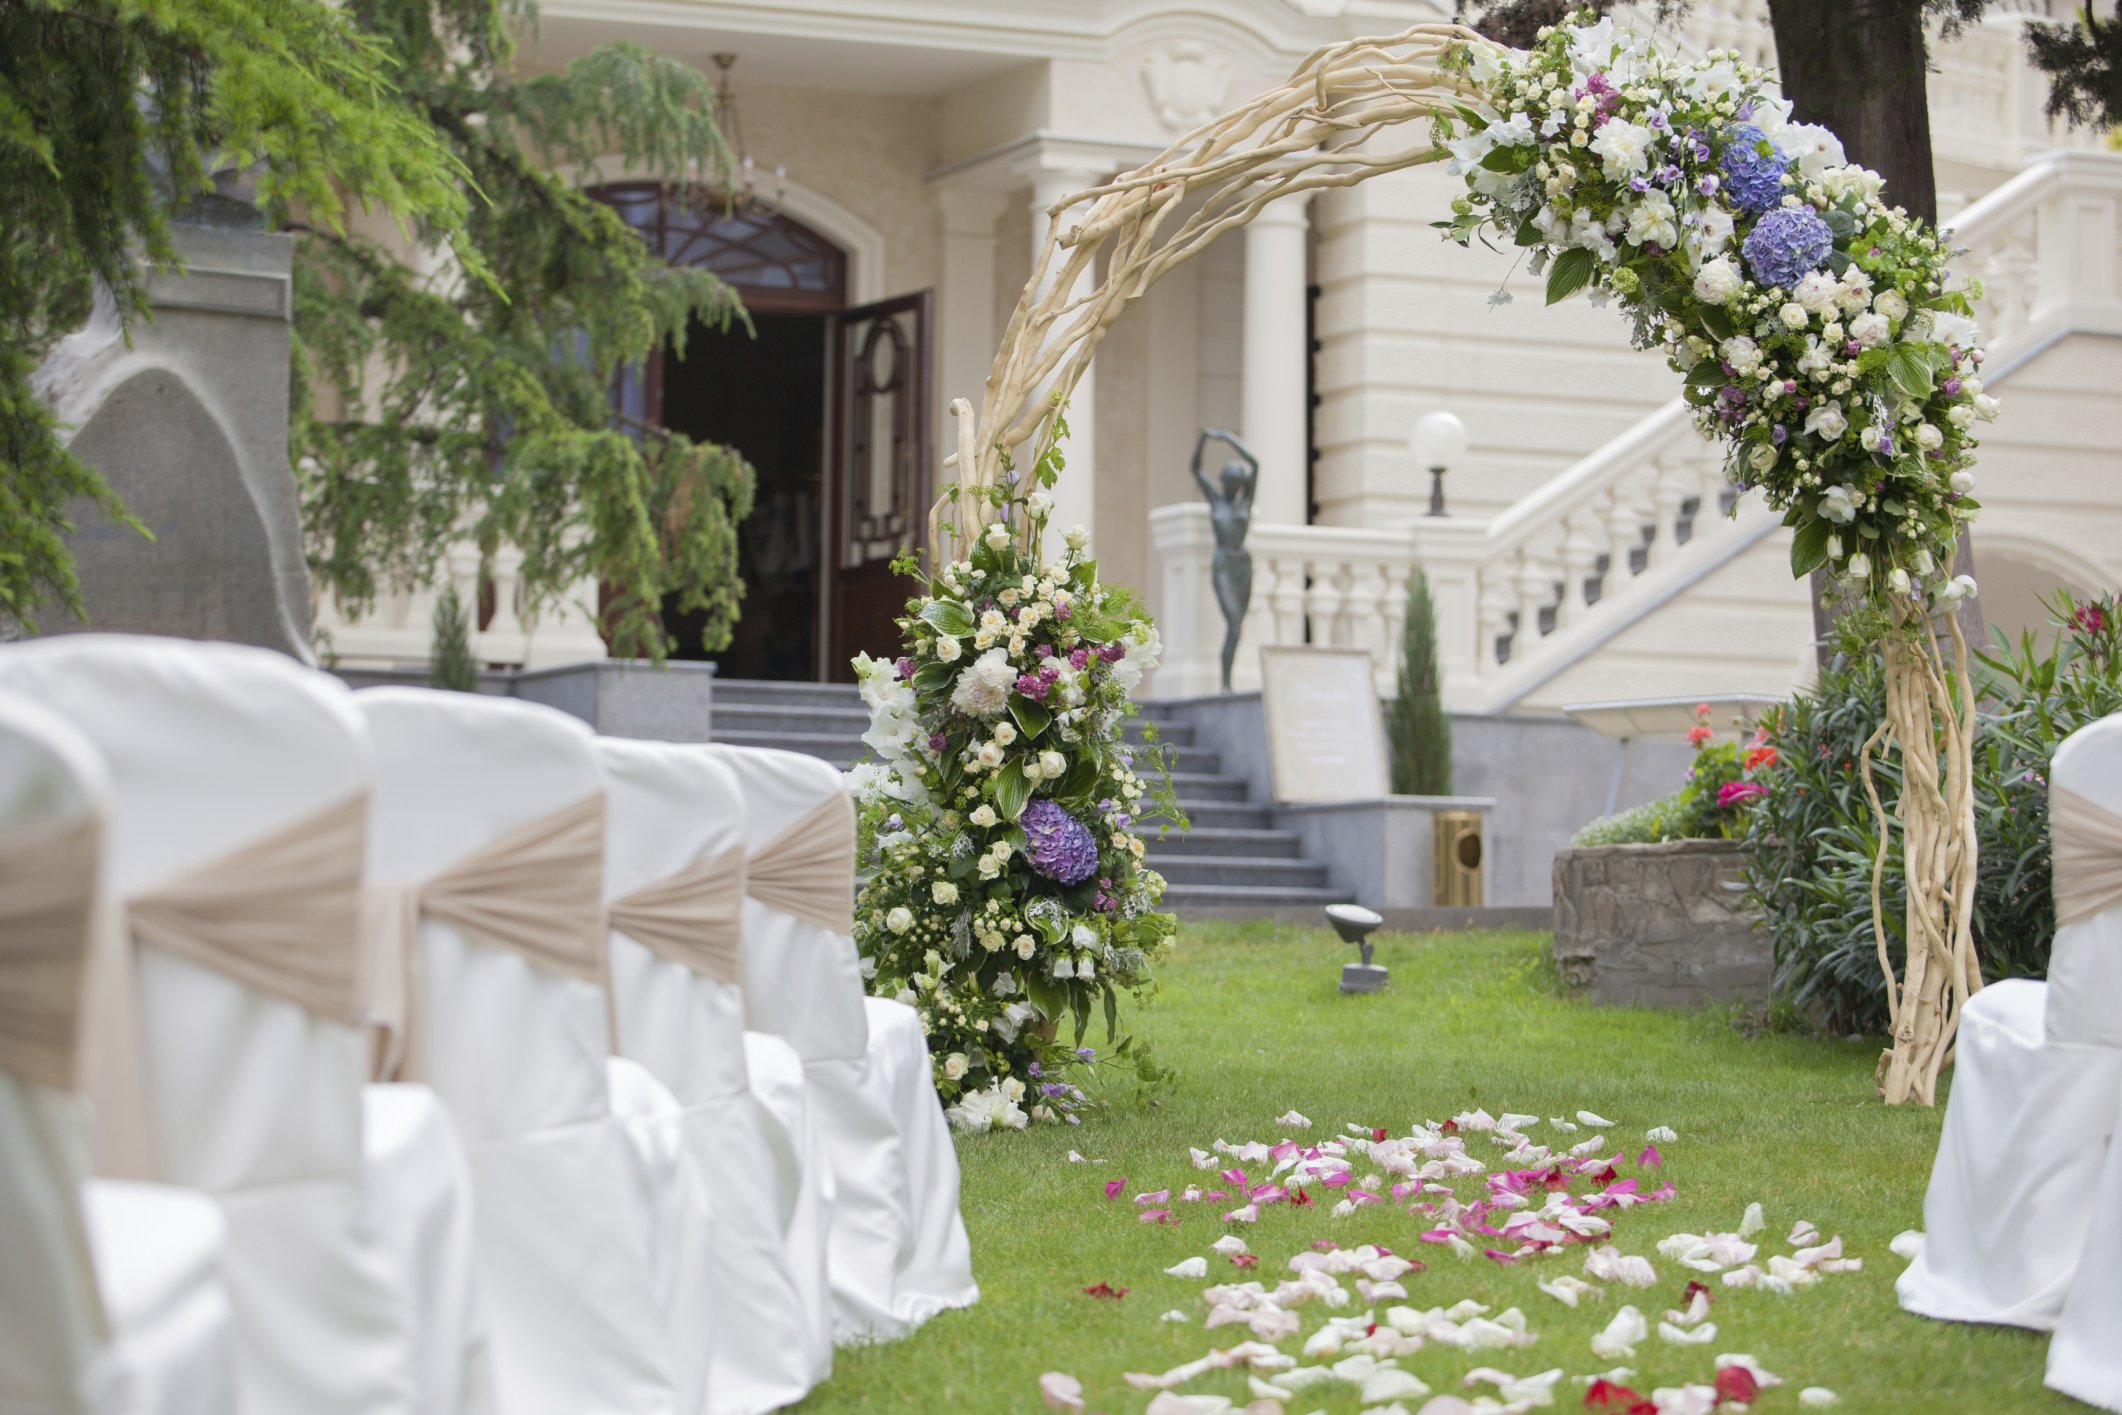 Garden Wedding: Tips For A Beautiful Wedding